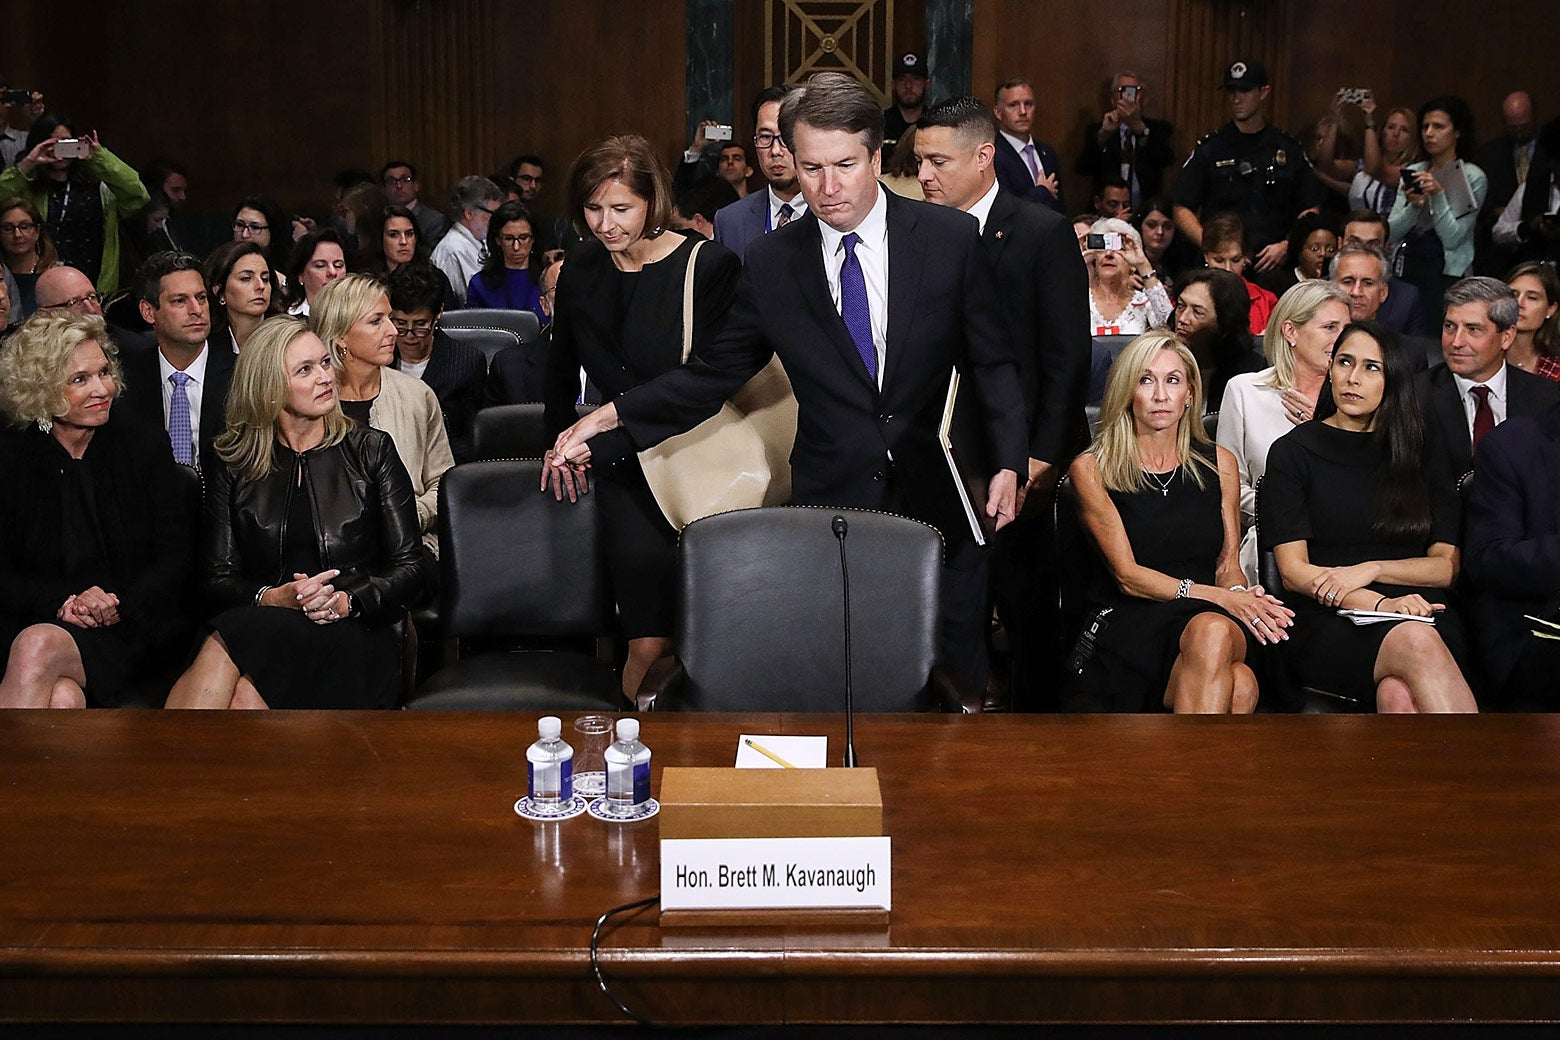 Brett Kavanaugh before his hearing